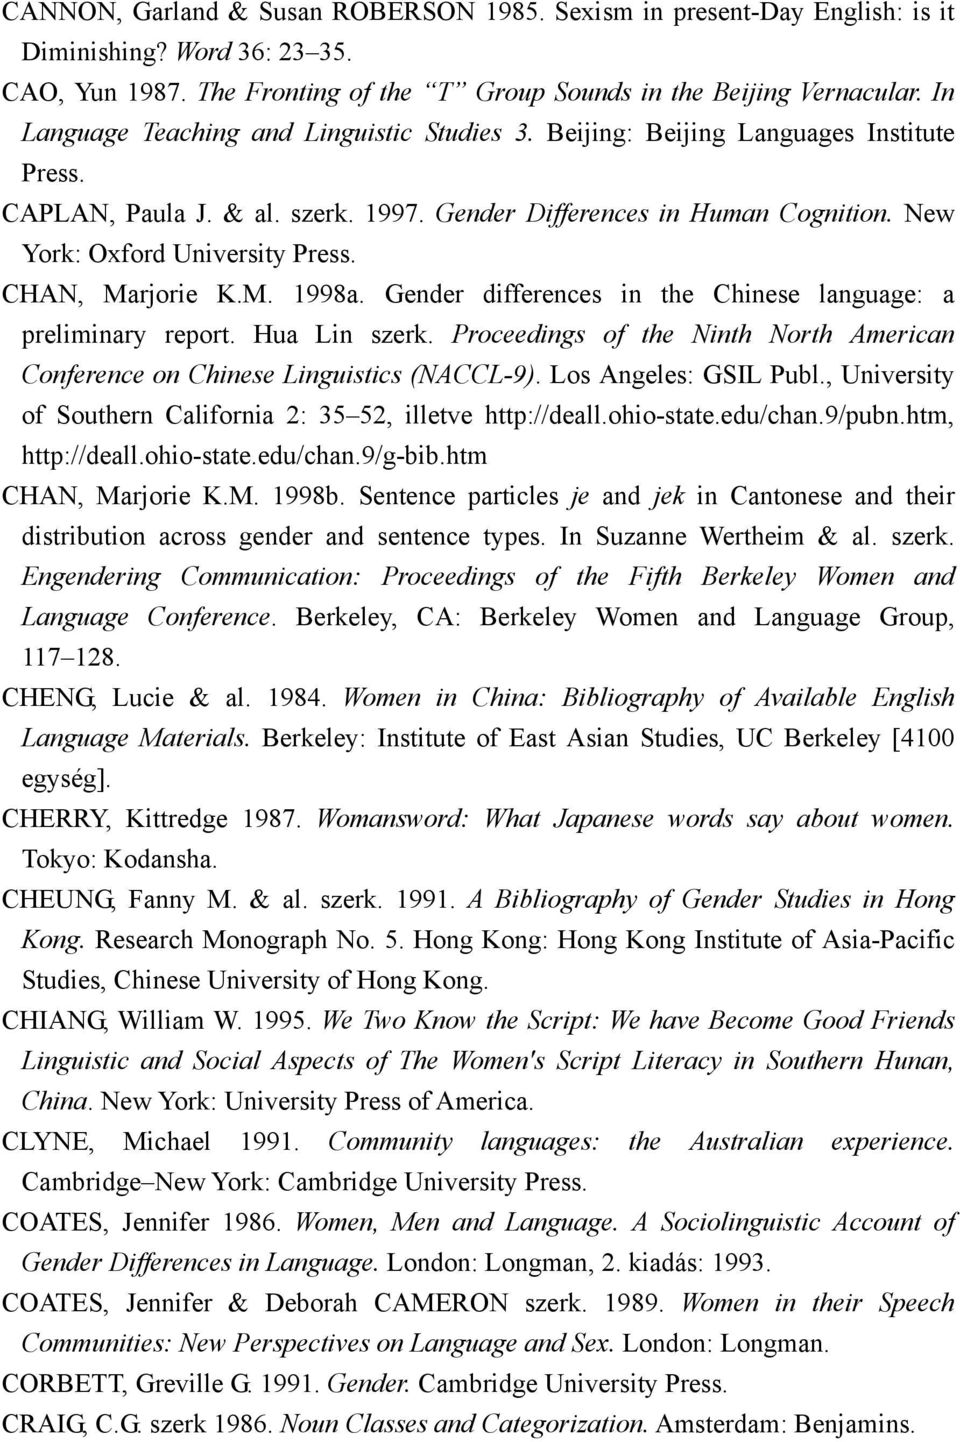 CHAN, Marjorie K.M. 1998a. Gender differences in the Chinese language: a preliminary report. Hua Lin szerk. Proceedings of the Ninth North American Conference on Chinese Linguistics (NACCL-9).